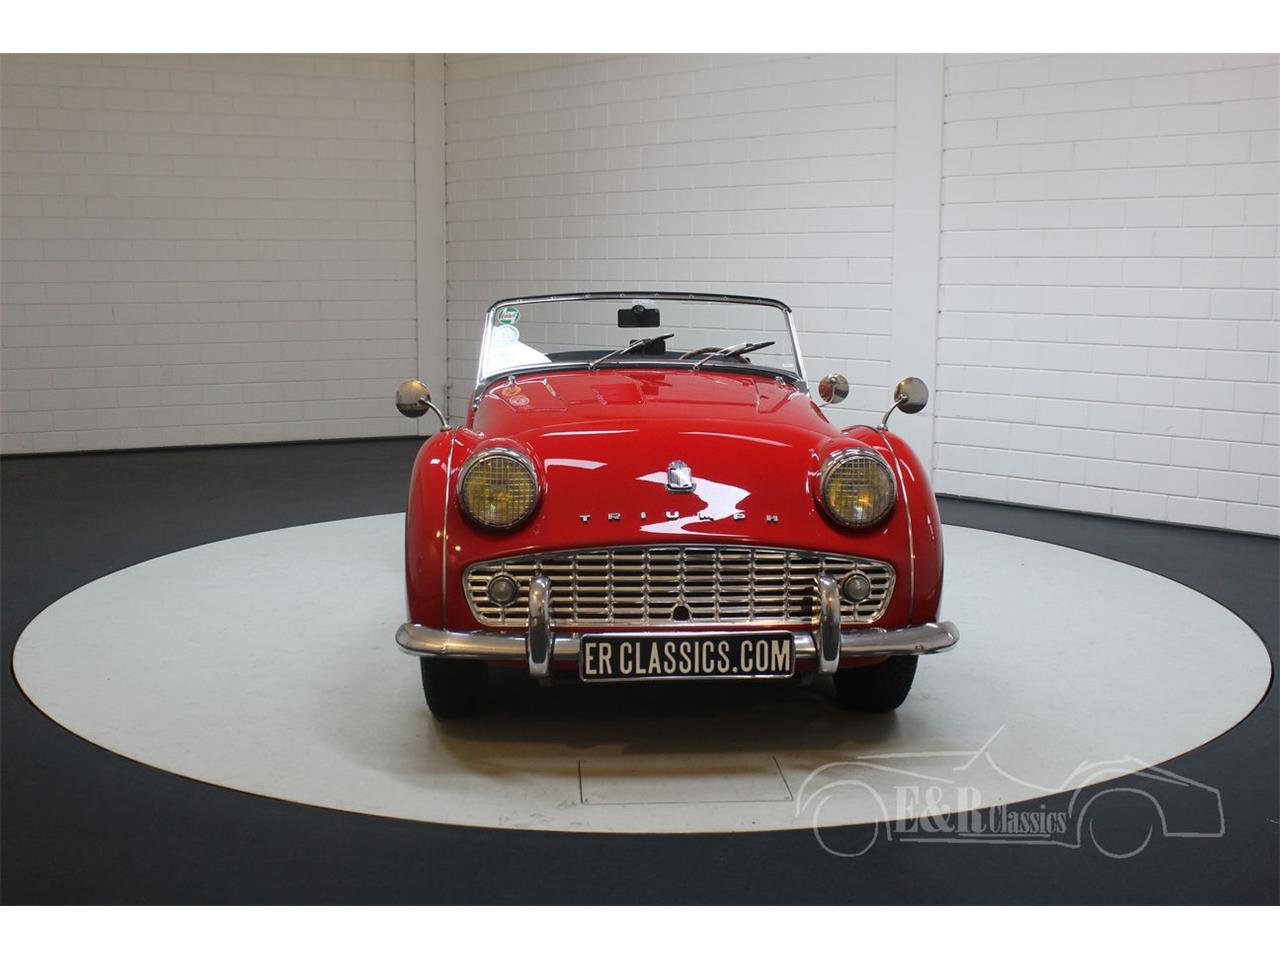 Large Picture of Classic 1960 Triumph TR3A located in Waalwijk Noord-Brabant - $41,800.00 - PLXB